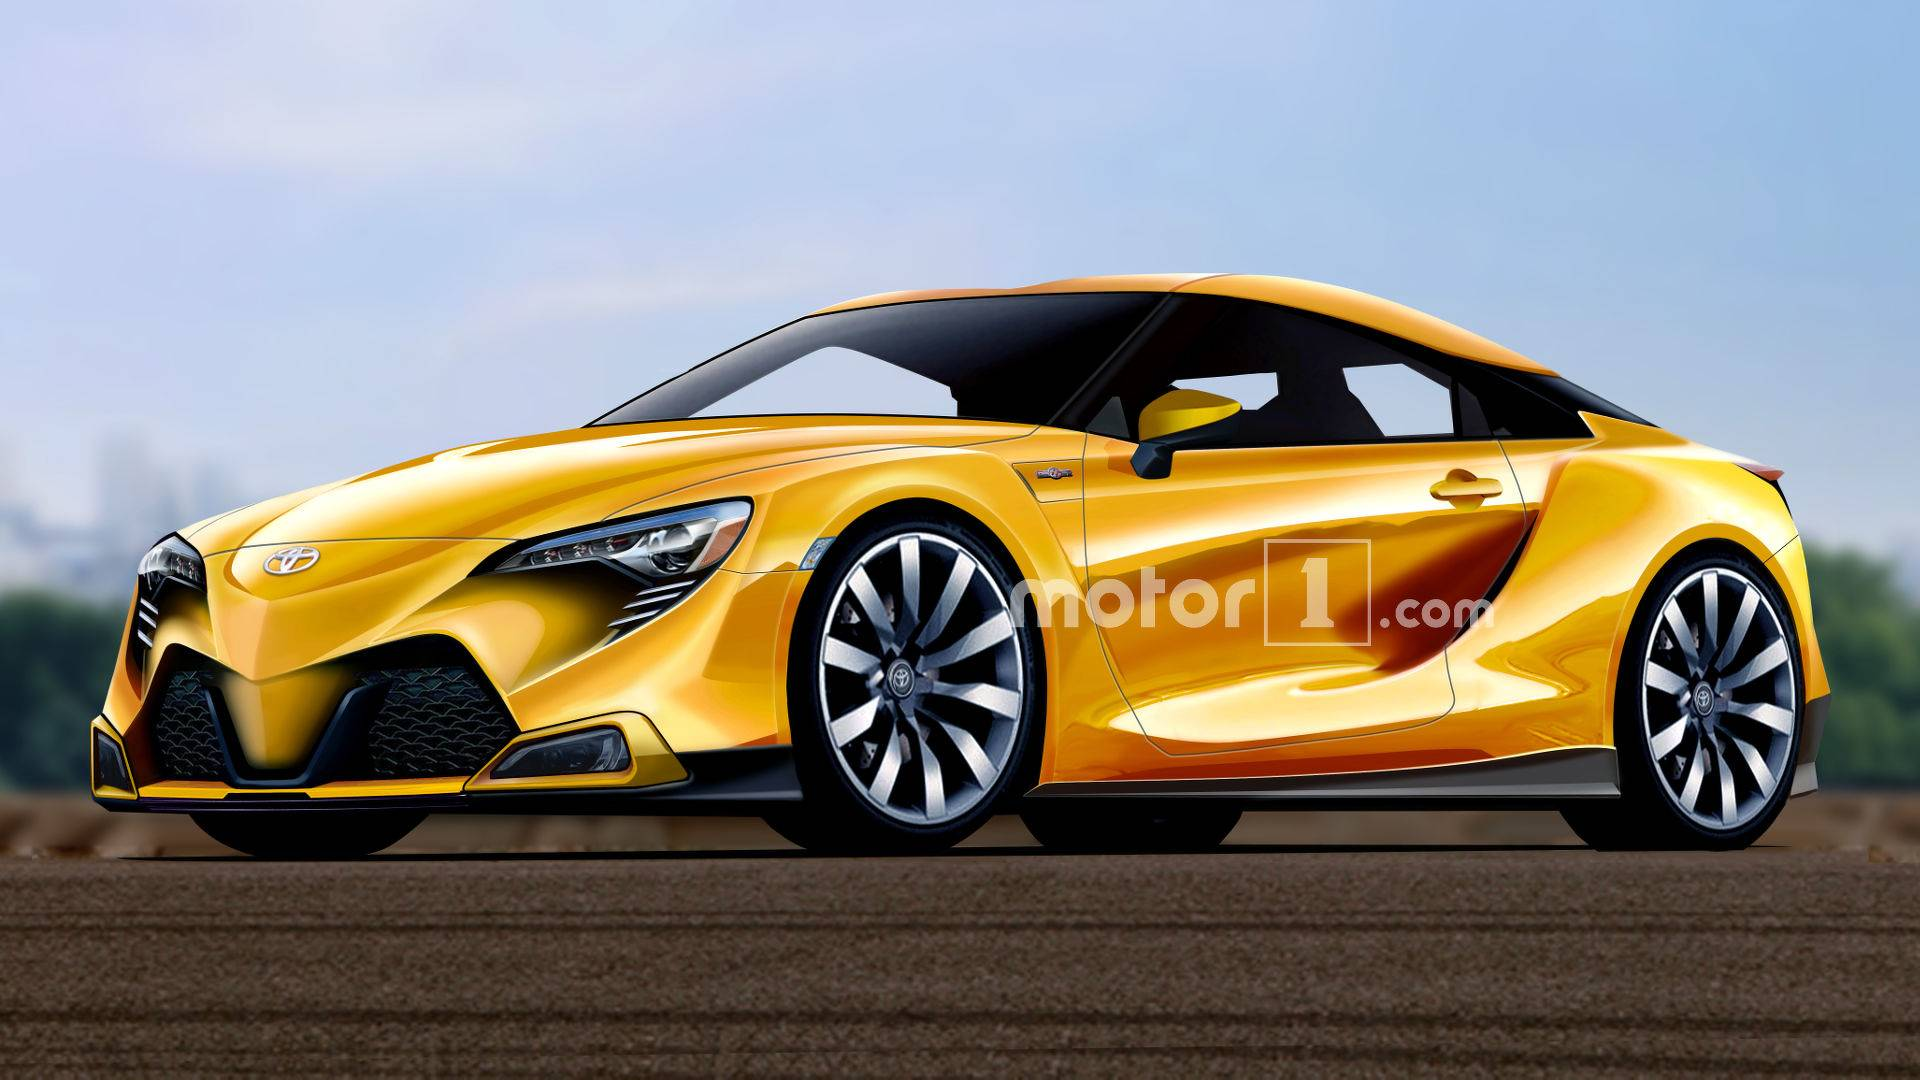 Toyota GR86 To Replace 86 And Pack More Than 255 Horsepower?